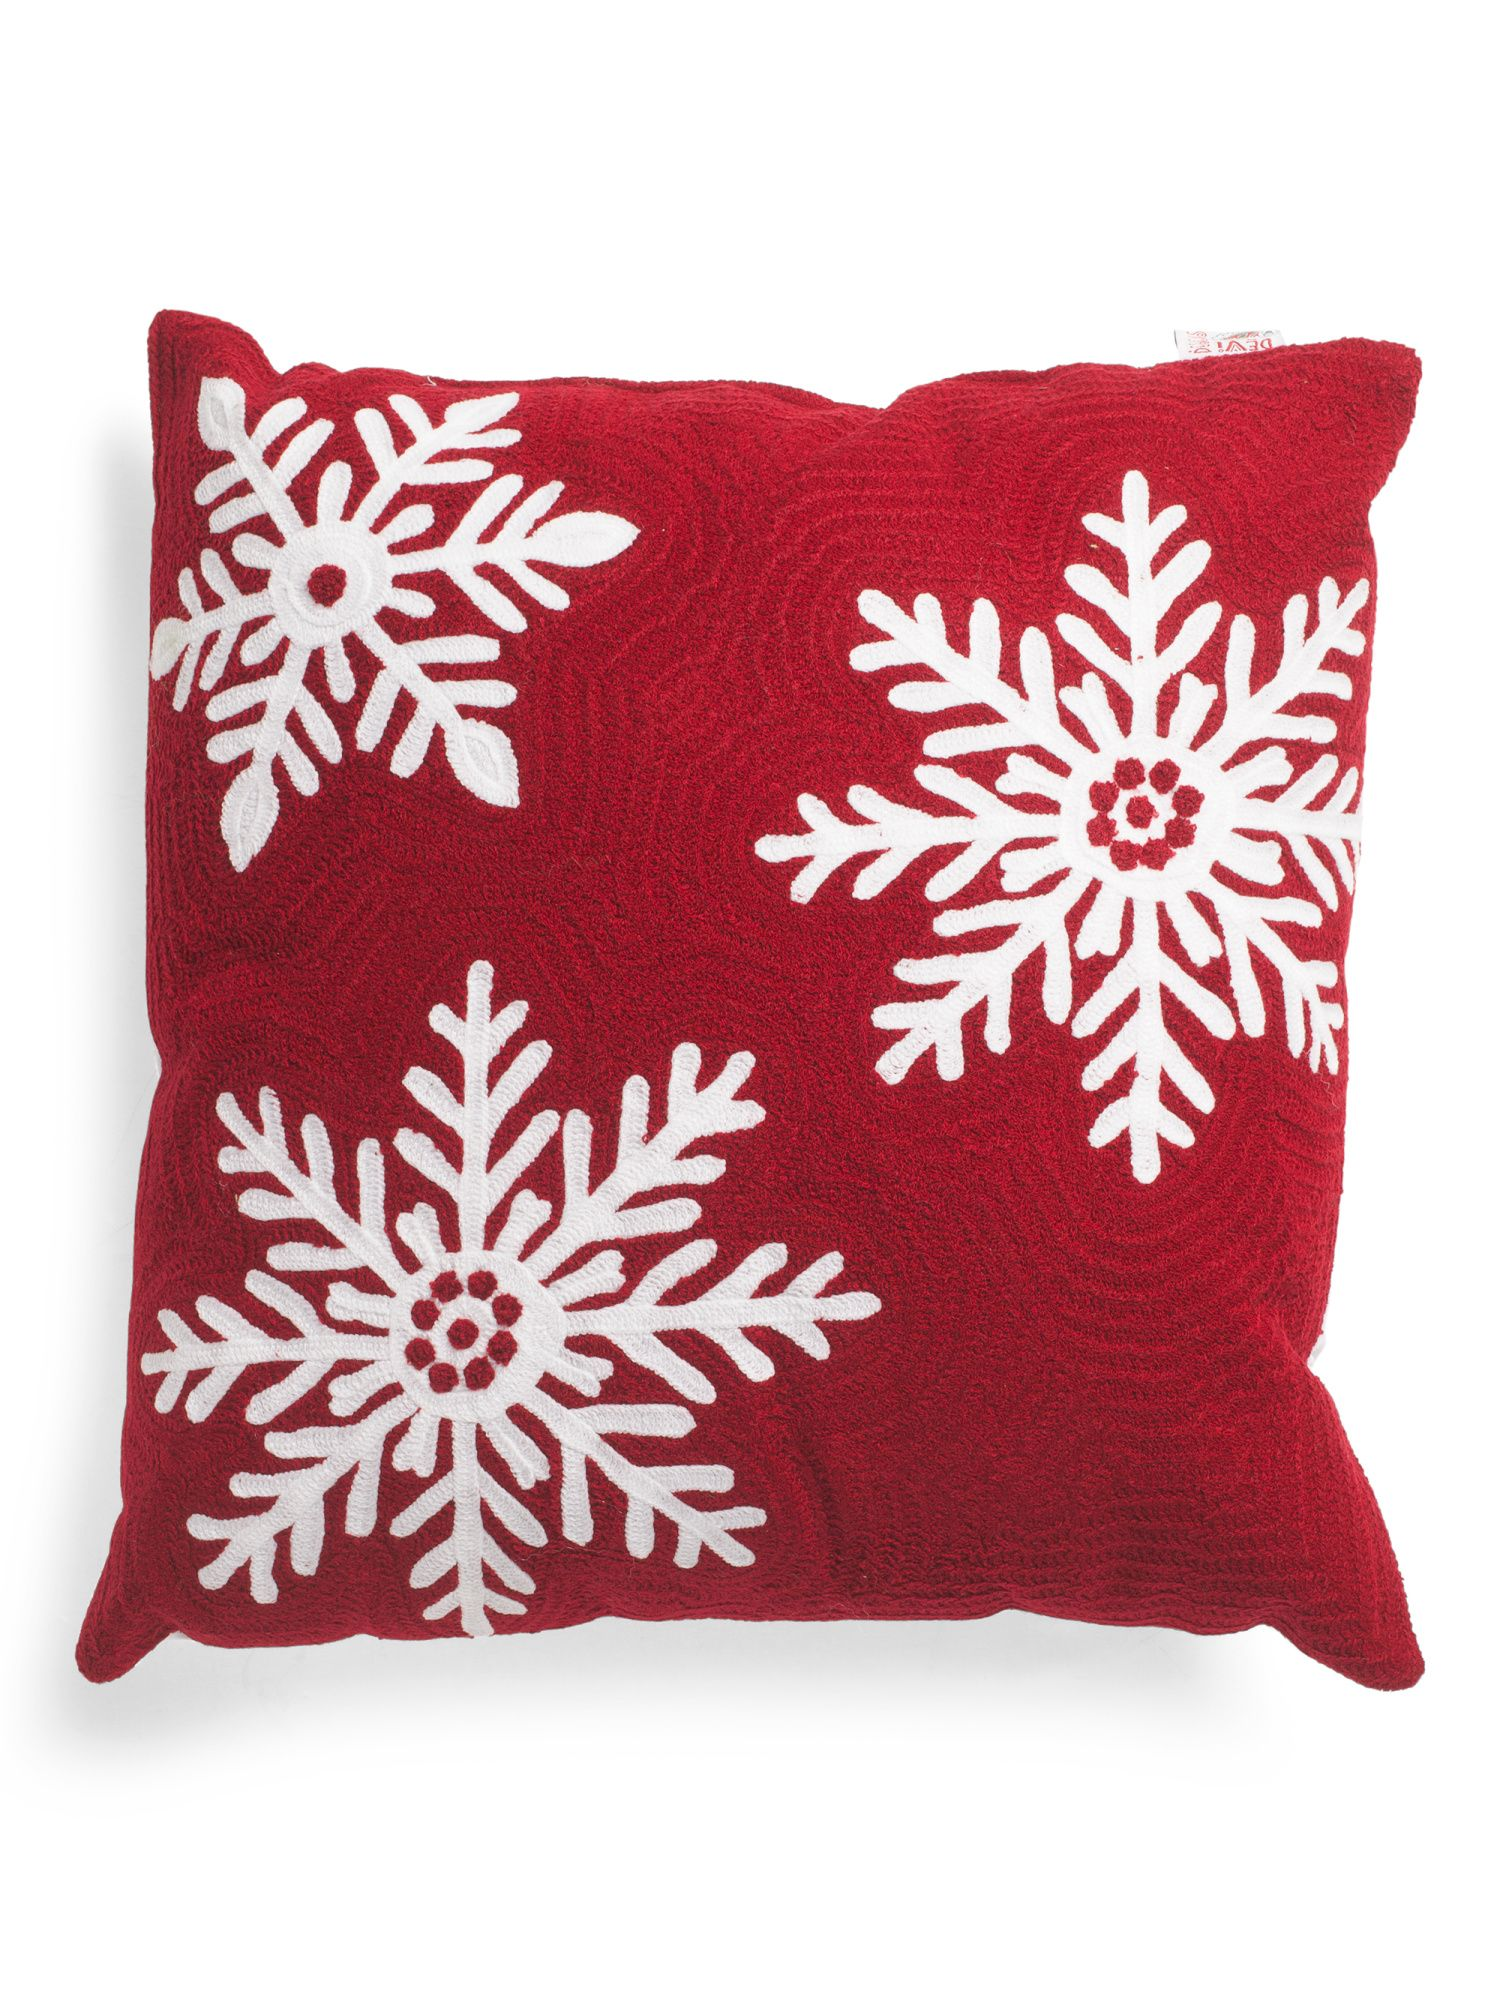 Made In India 20x20 Crewel Embroidered Snowflake Pillow Throw